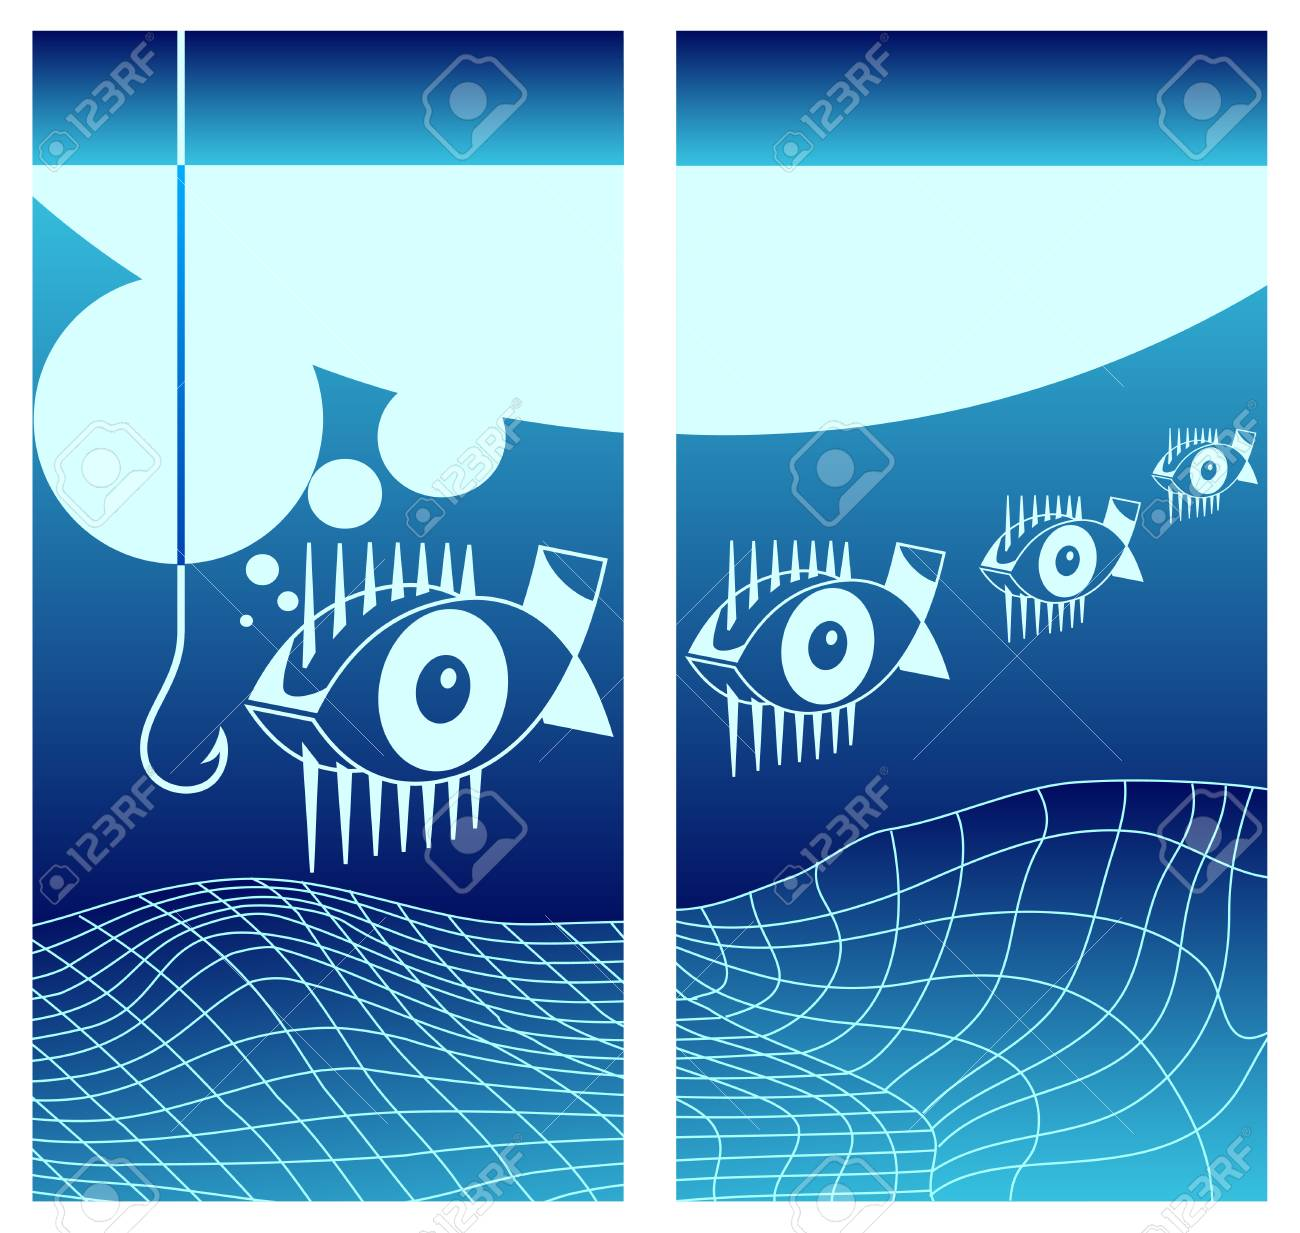 Biting fishes background in blue, underwater vector illustration Stock Vector - 5041750